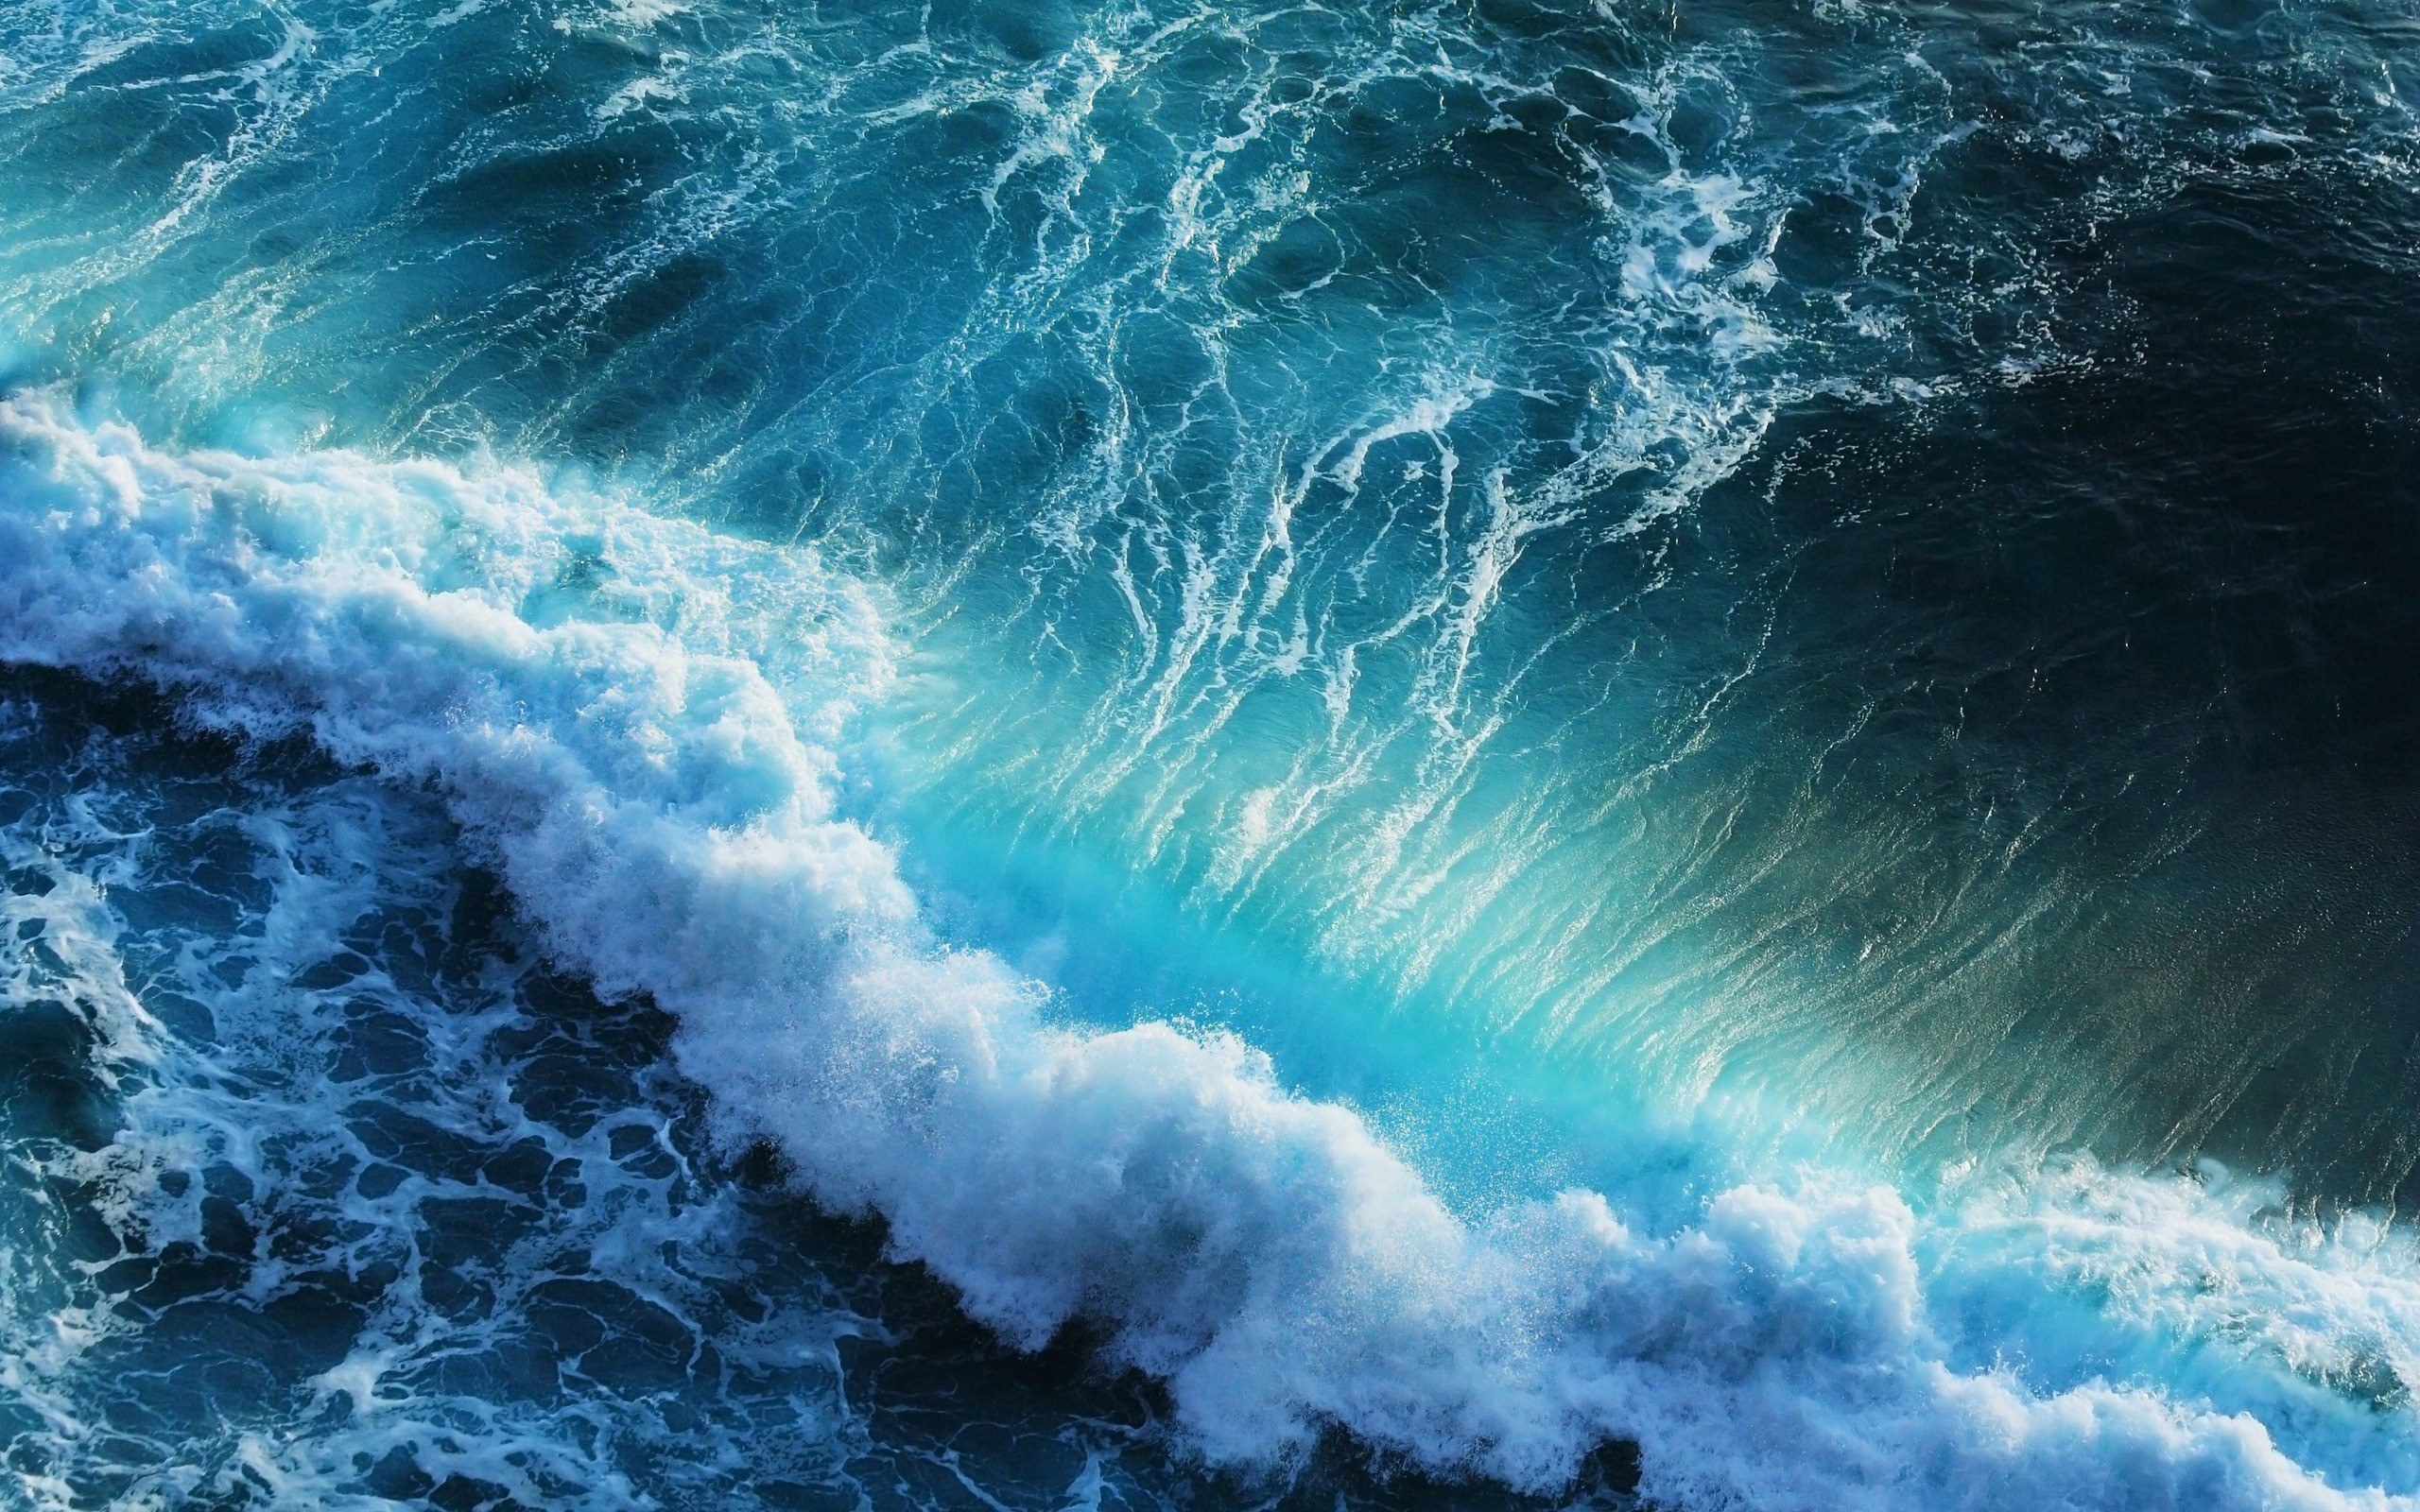 ocean wallpaper hd (77+ images)